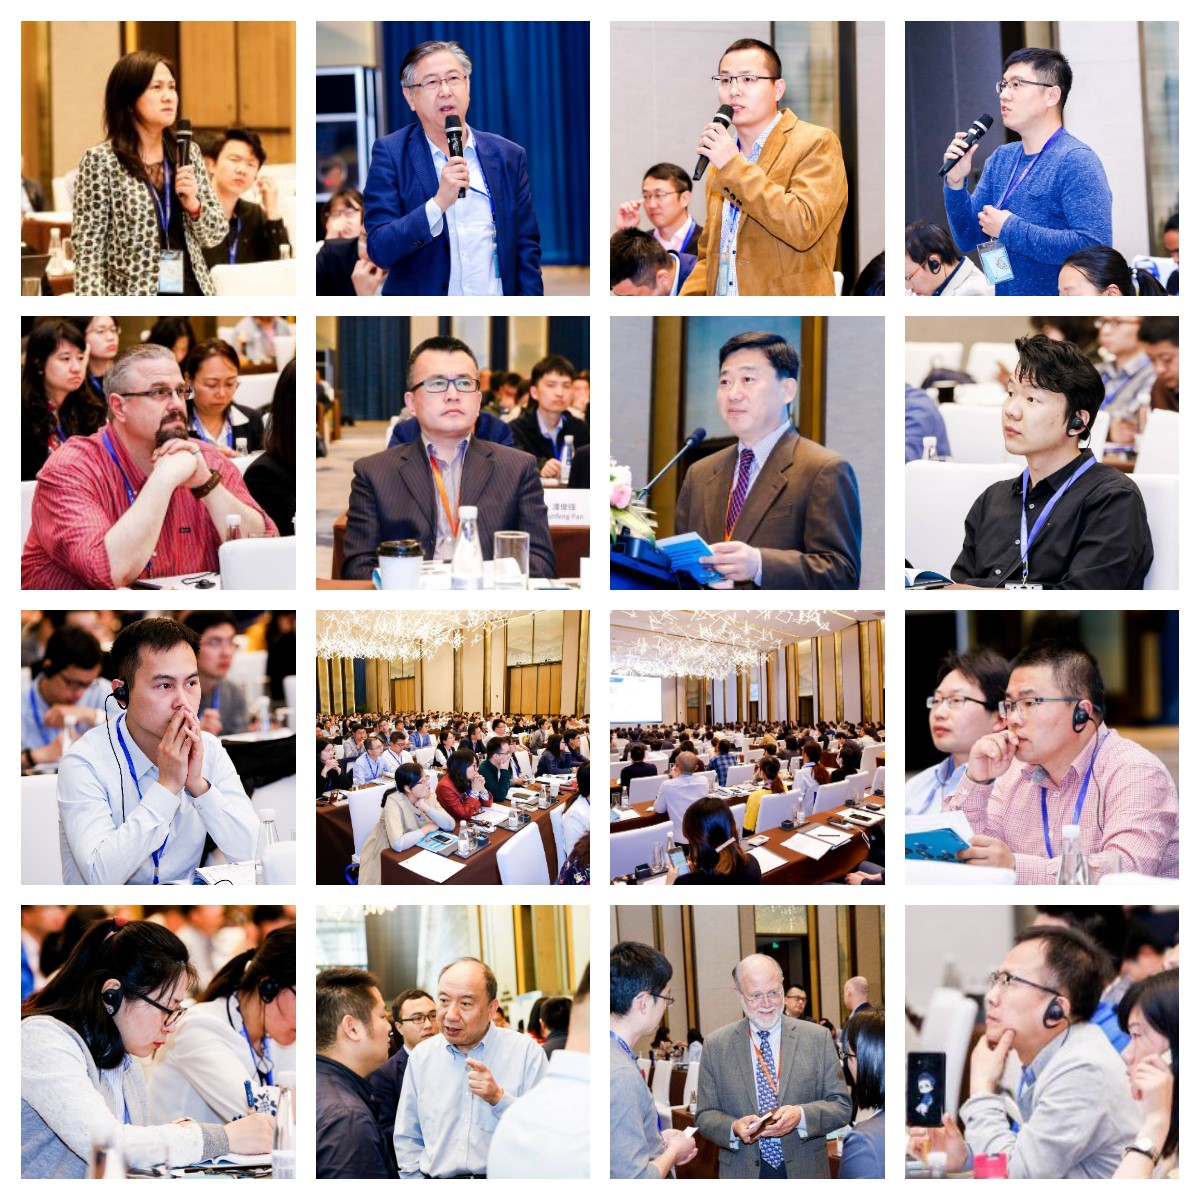 Exchange during the forum, and audiences were deeply absorbed by the topics